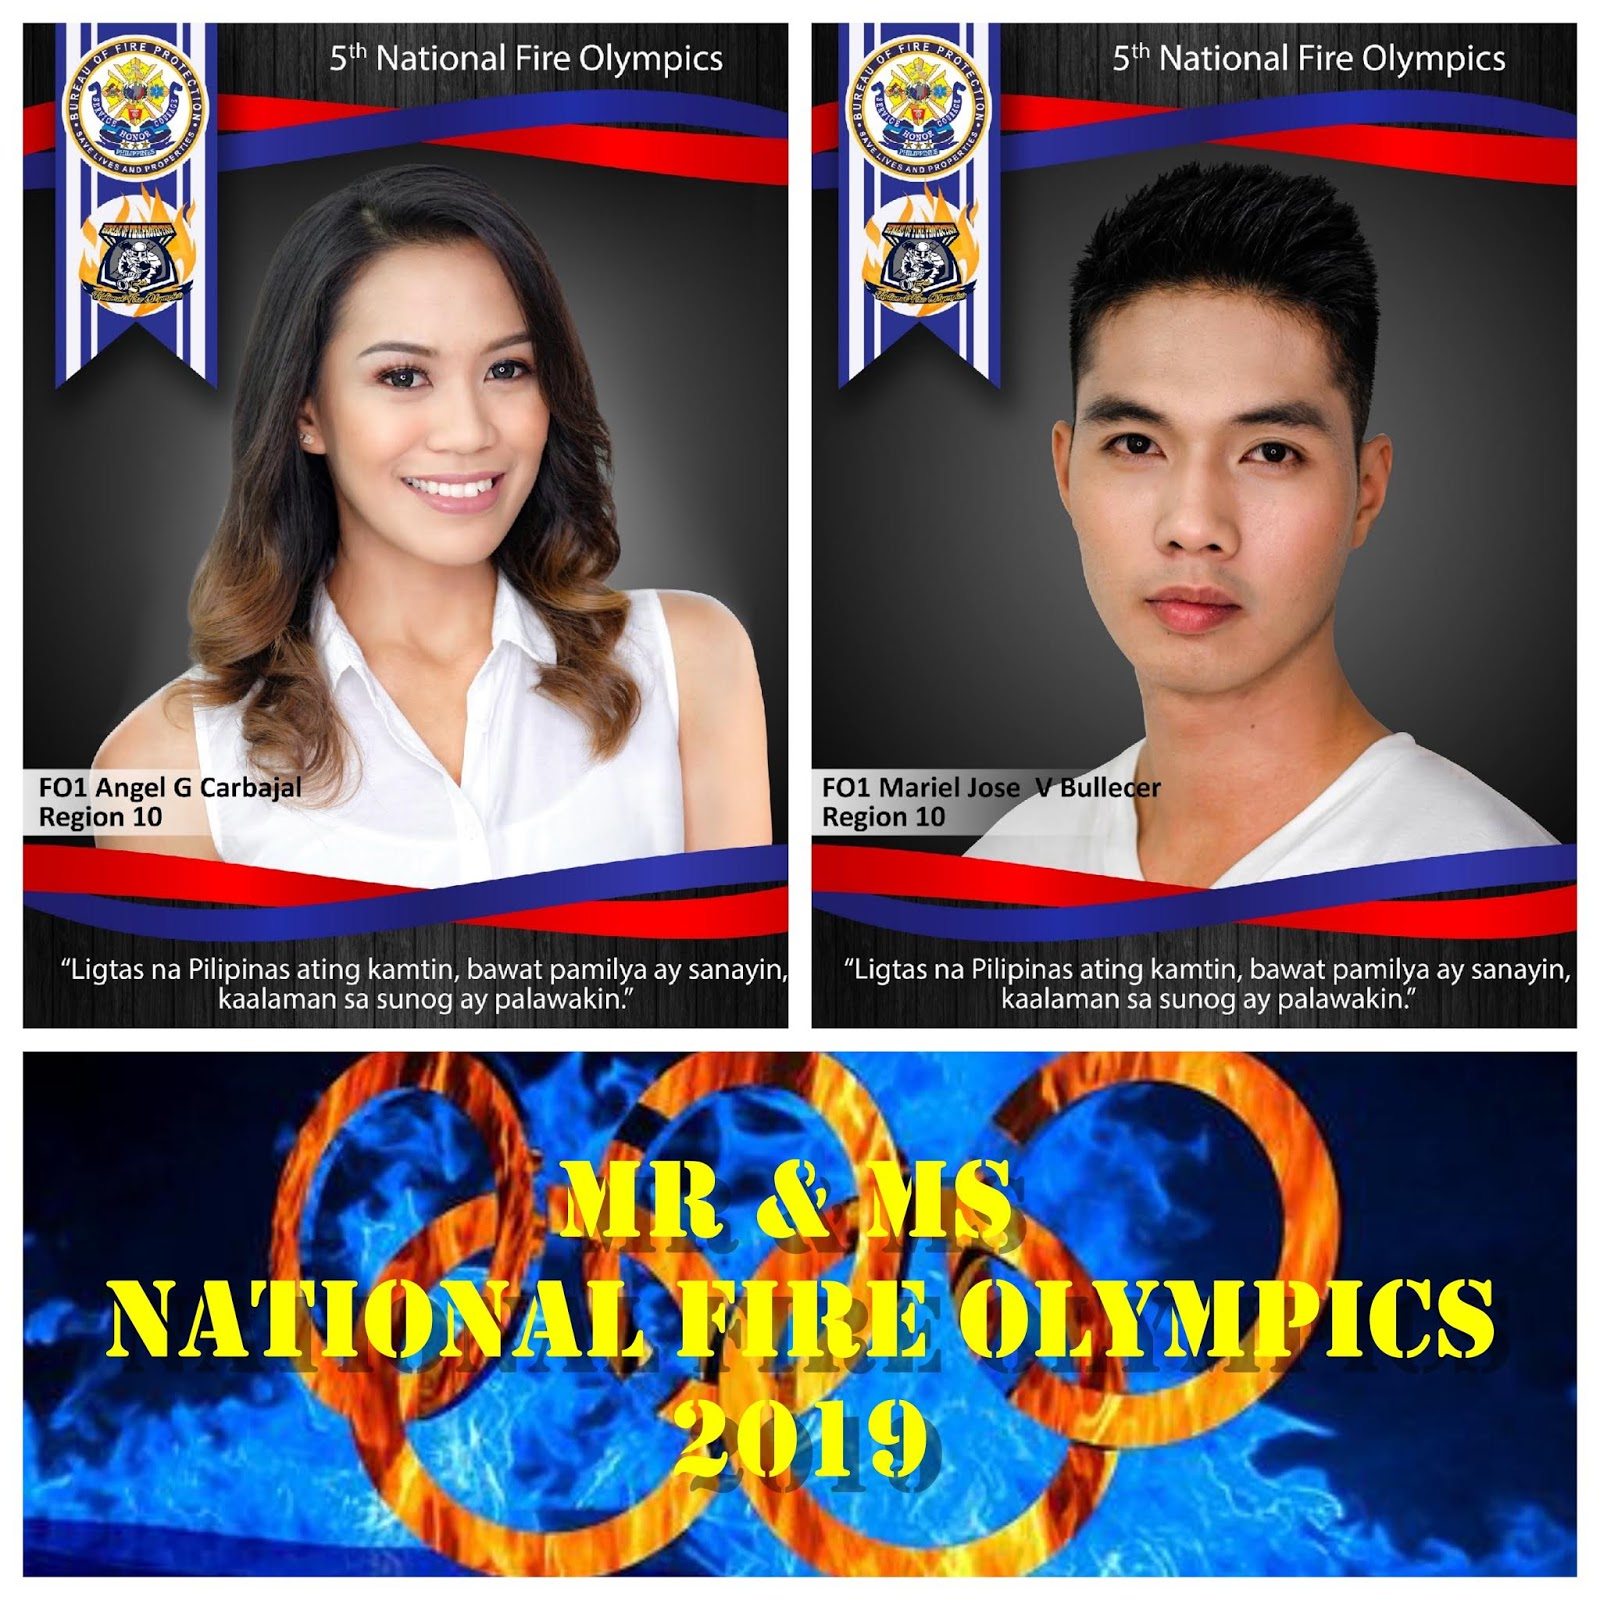 BFP Region 10 Representatives for the Mr & Ms National Fire Olympics 2019